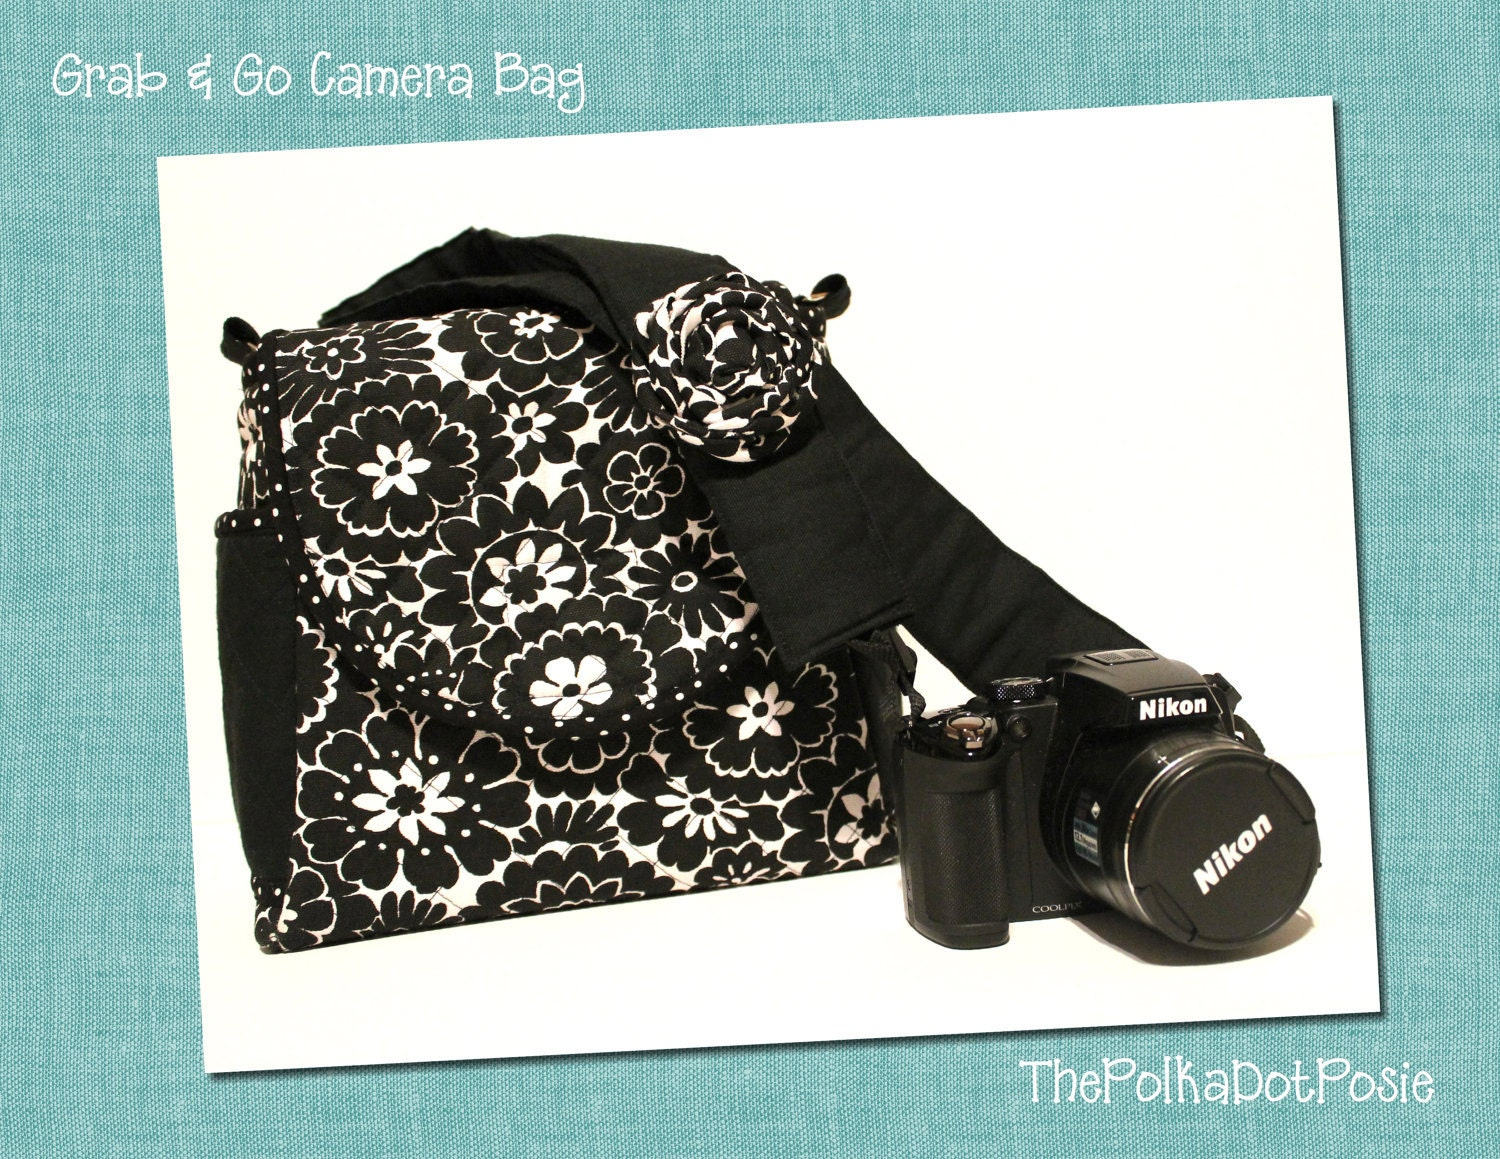 Grab & Go Camera Media Bag in Black and White Floral